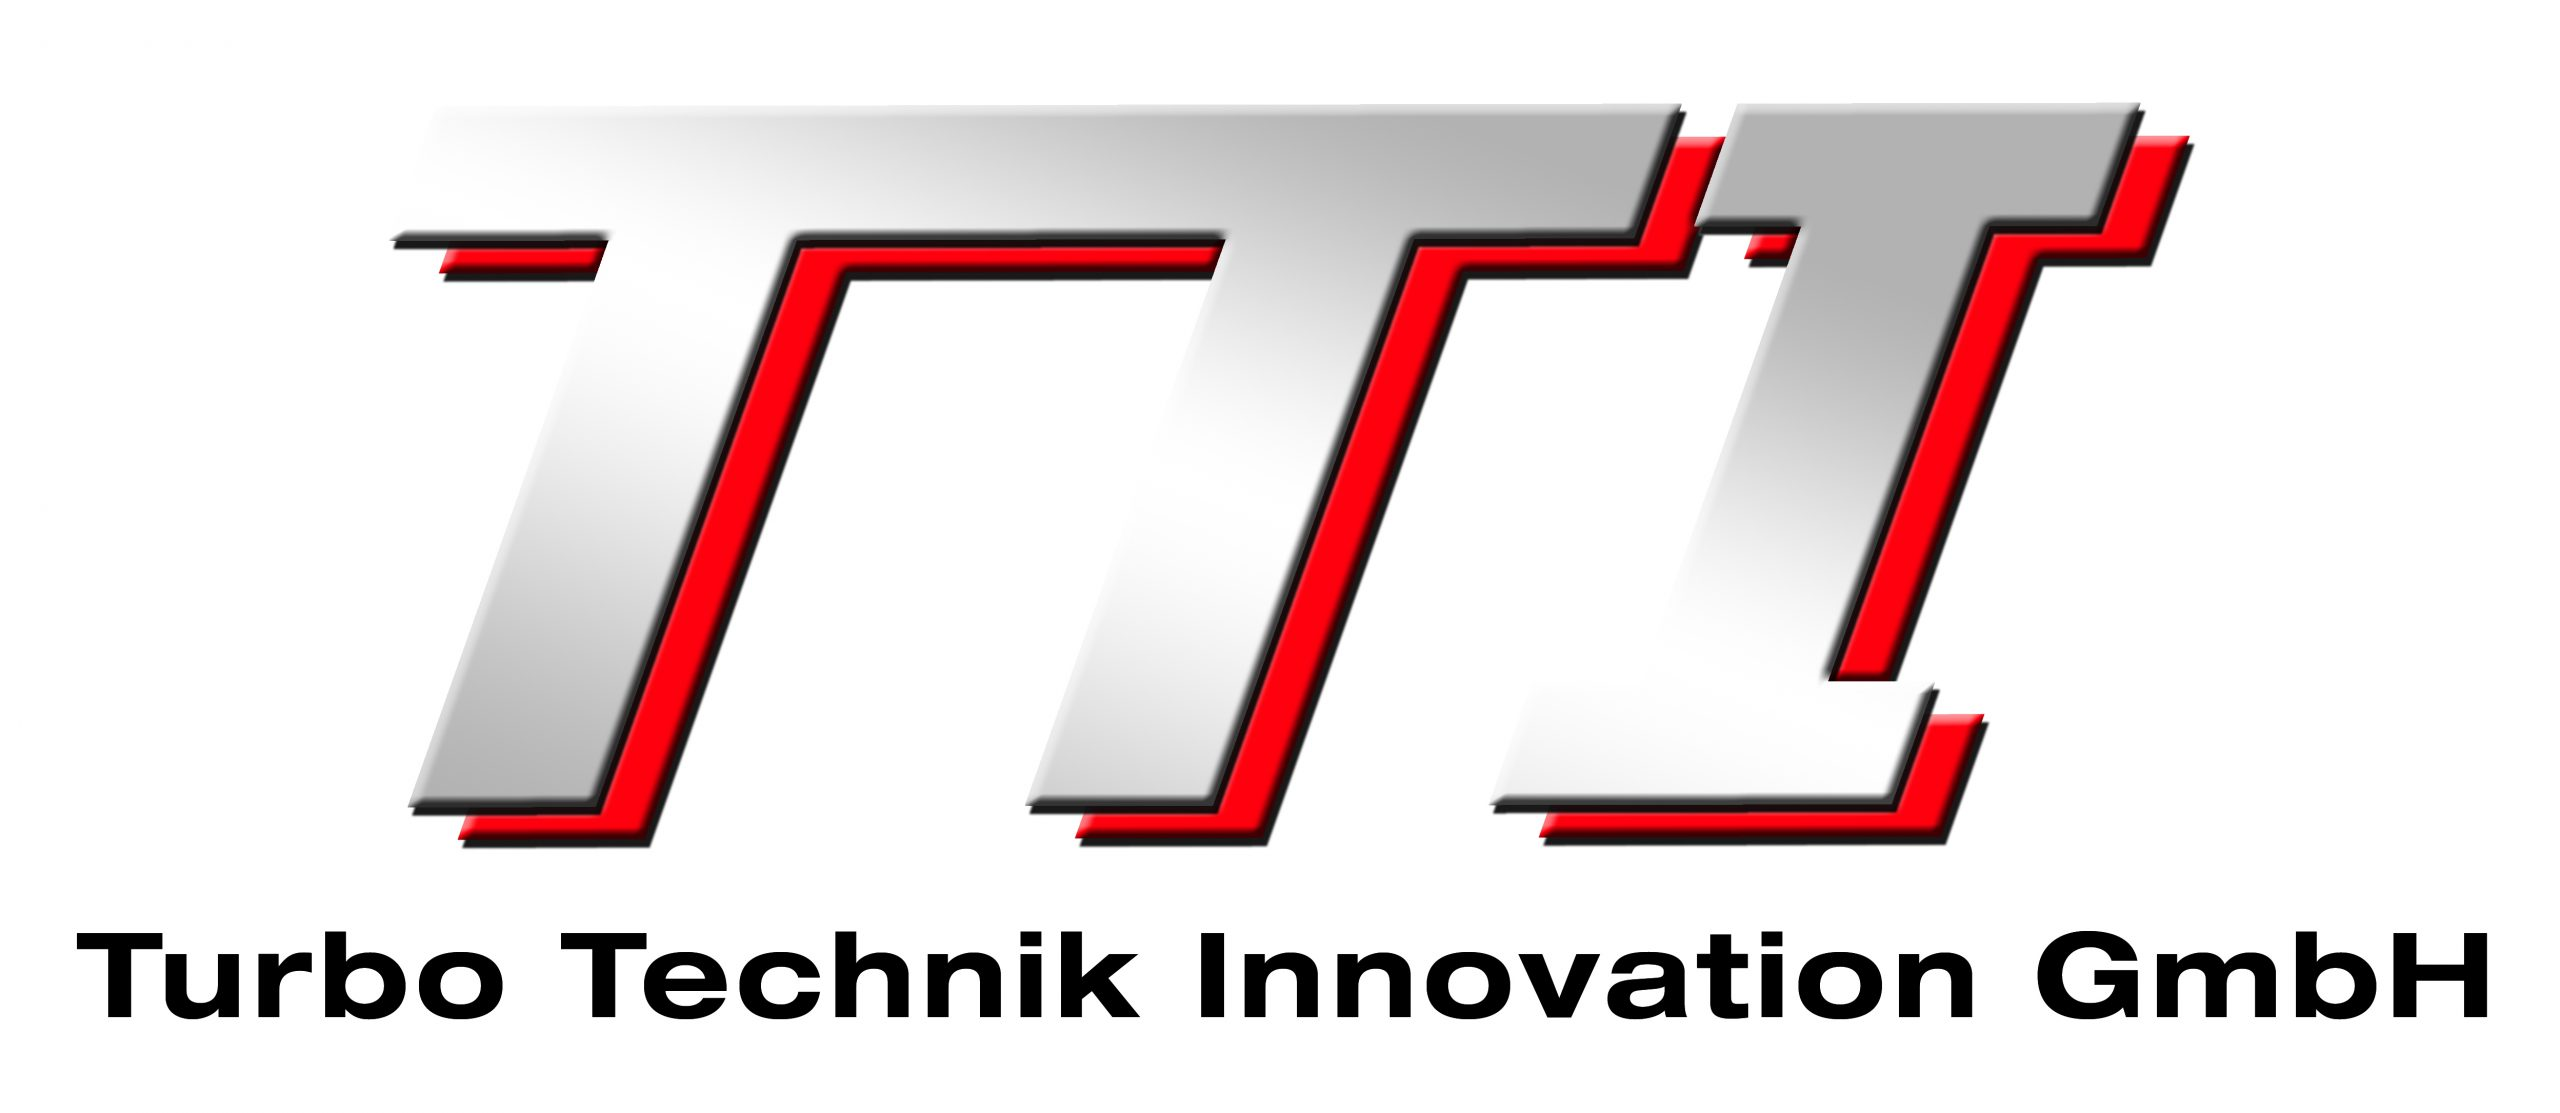 Turbo Technik Innovation GmbH